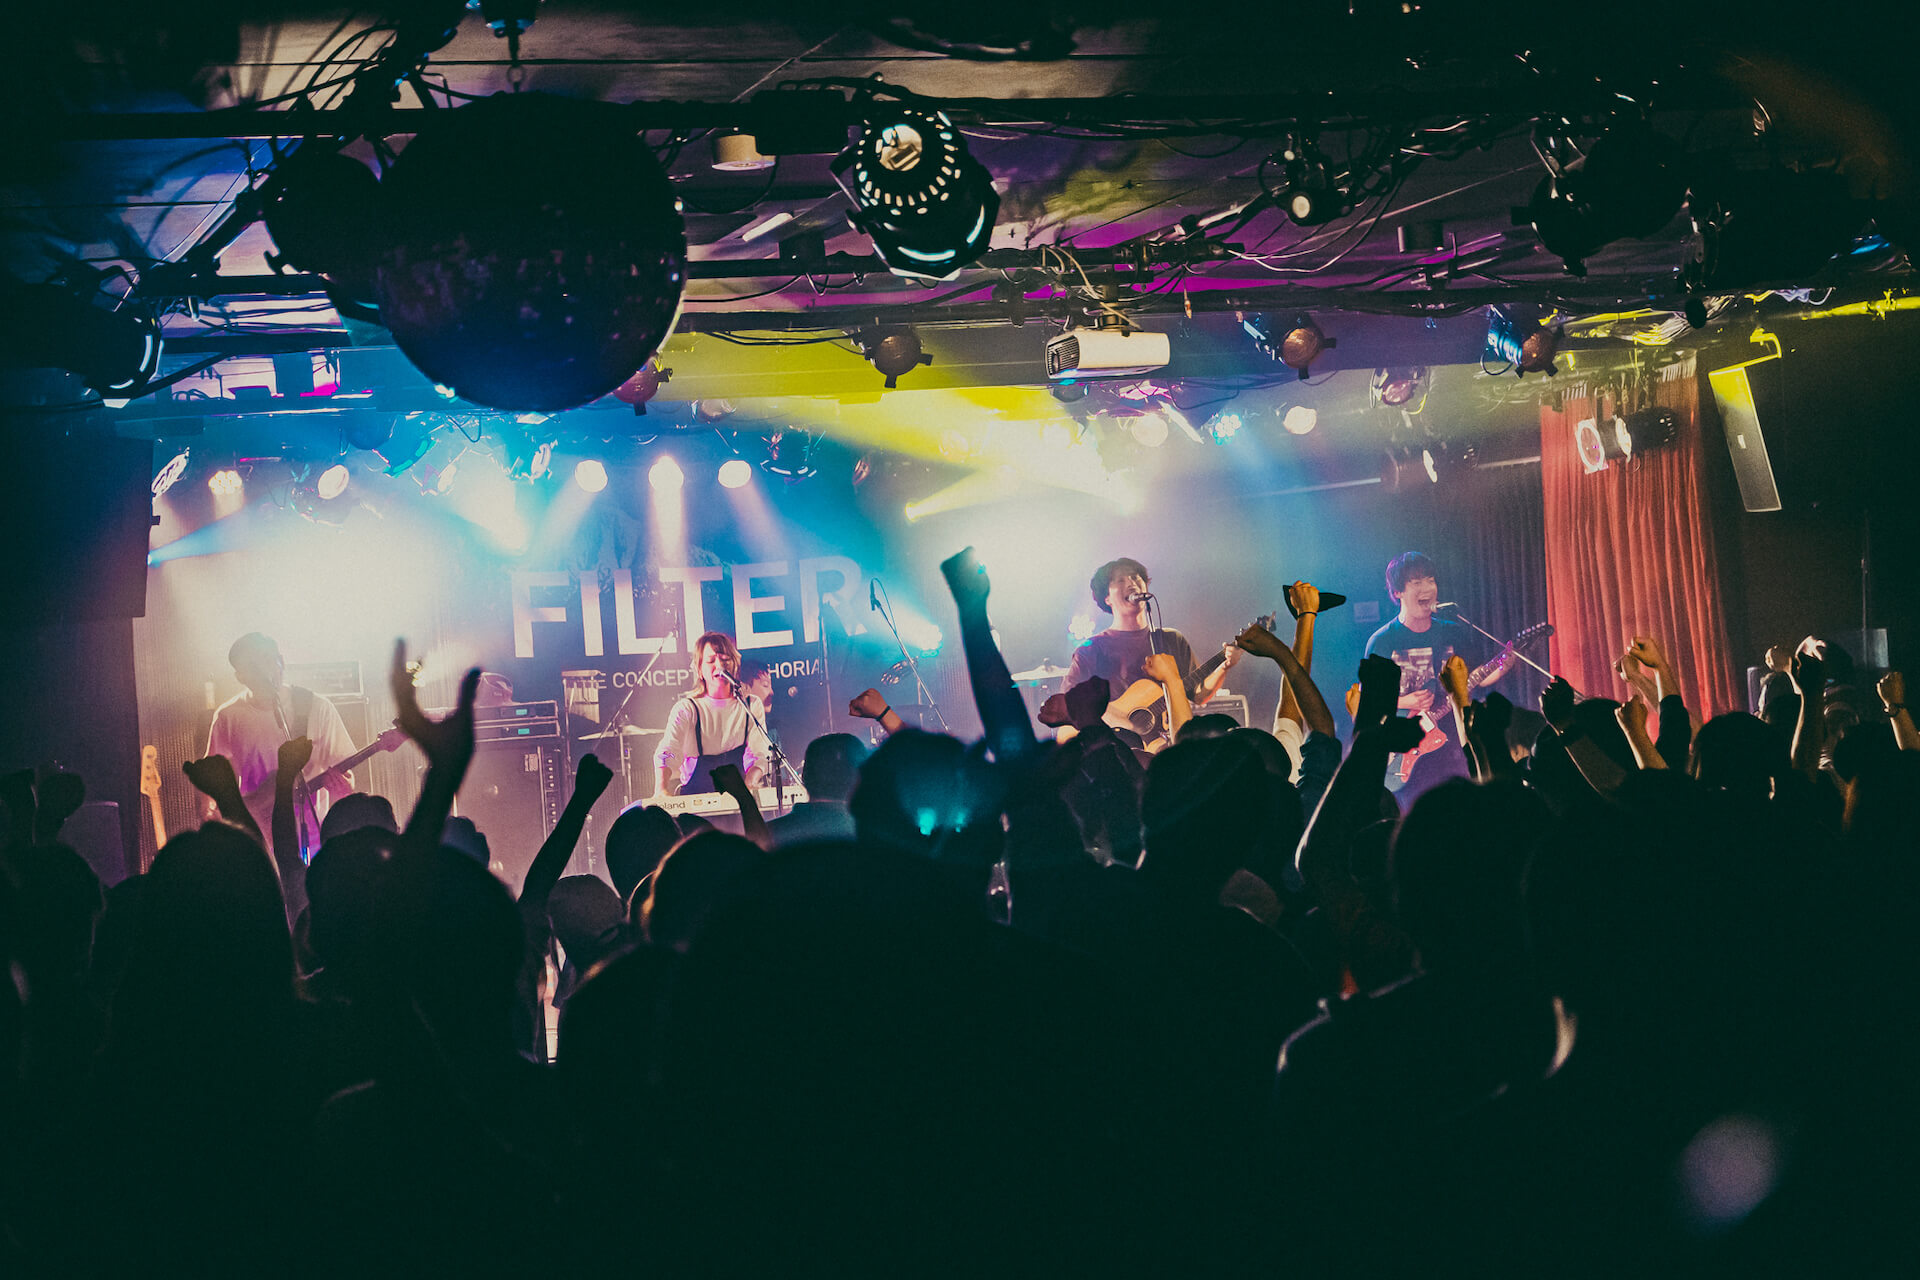 """FILTER、10年目の想いは次の旅路へ──ライブレポート:FILTER 10th Anniversary ONE MAN""""Stand By Me"""" music210628_filter-07"""